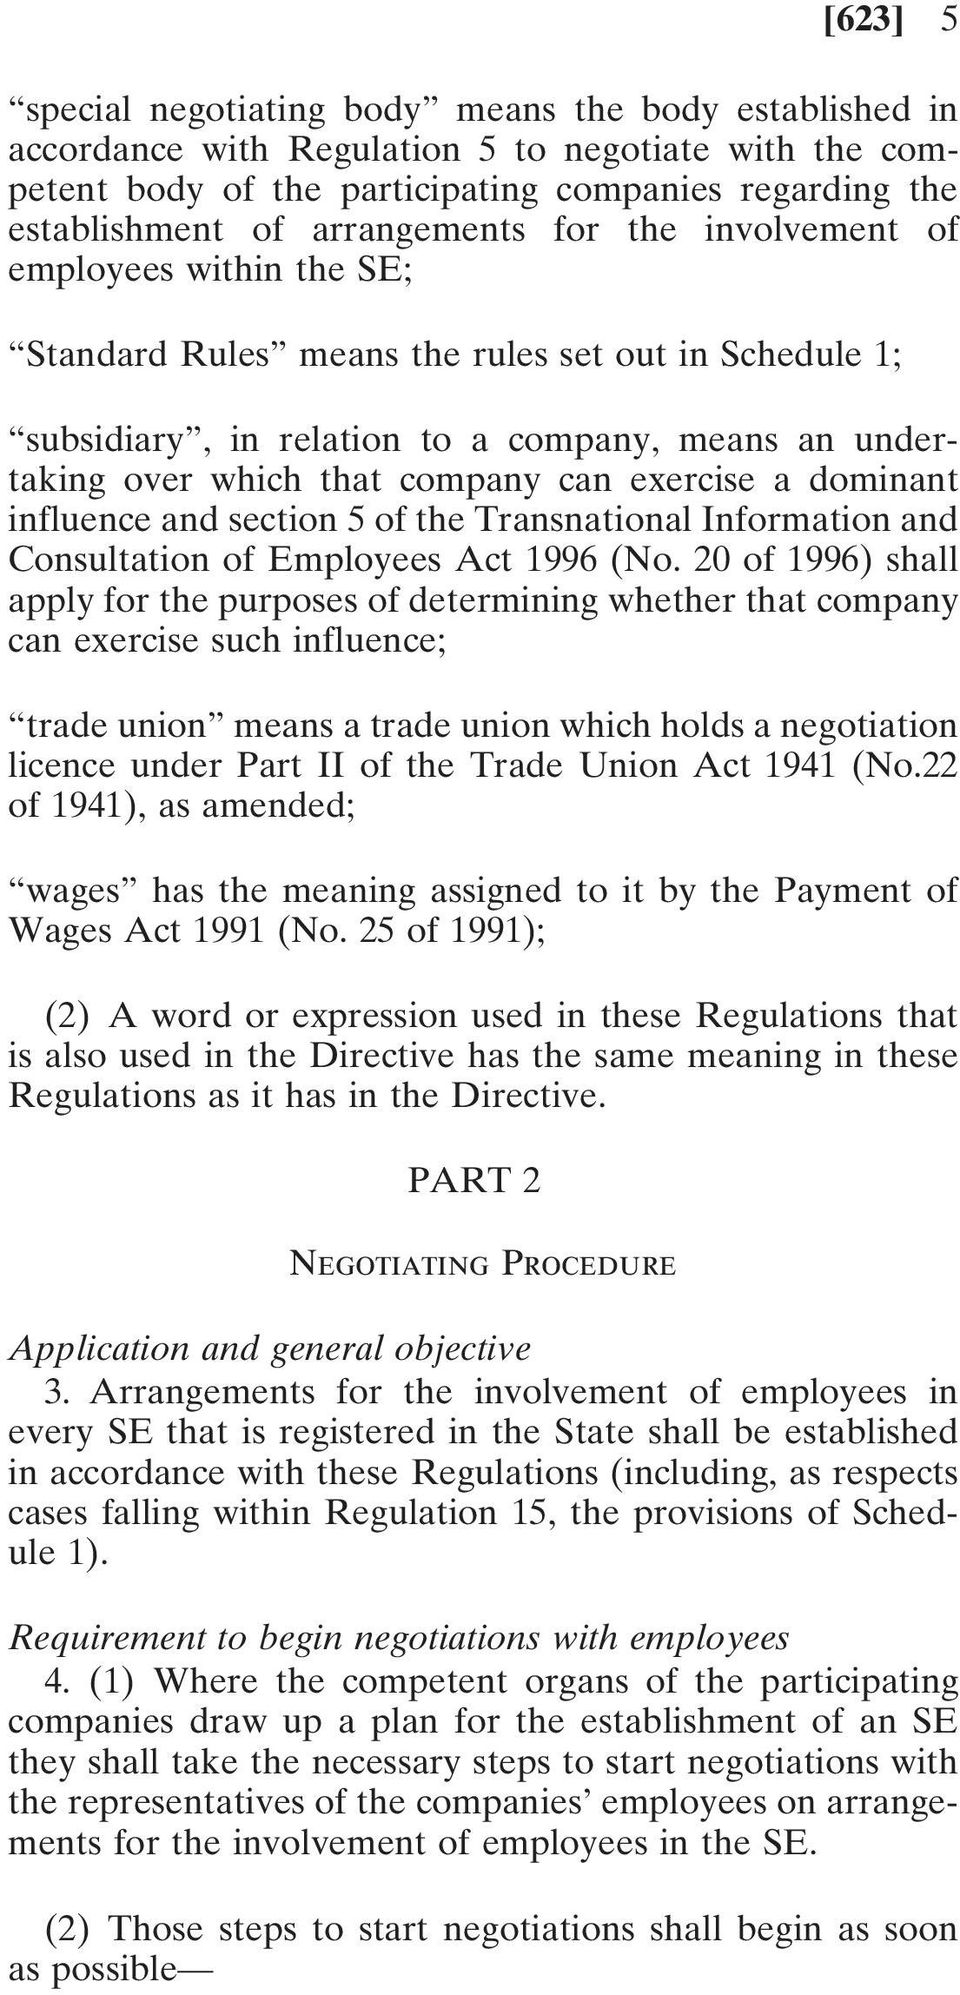 can exercise a dominant influence and section 5 of the Transnational Information and Consultation of Employees Act 1996 (No.